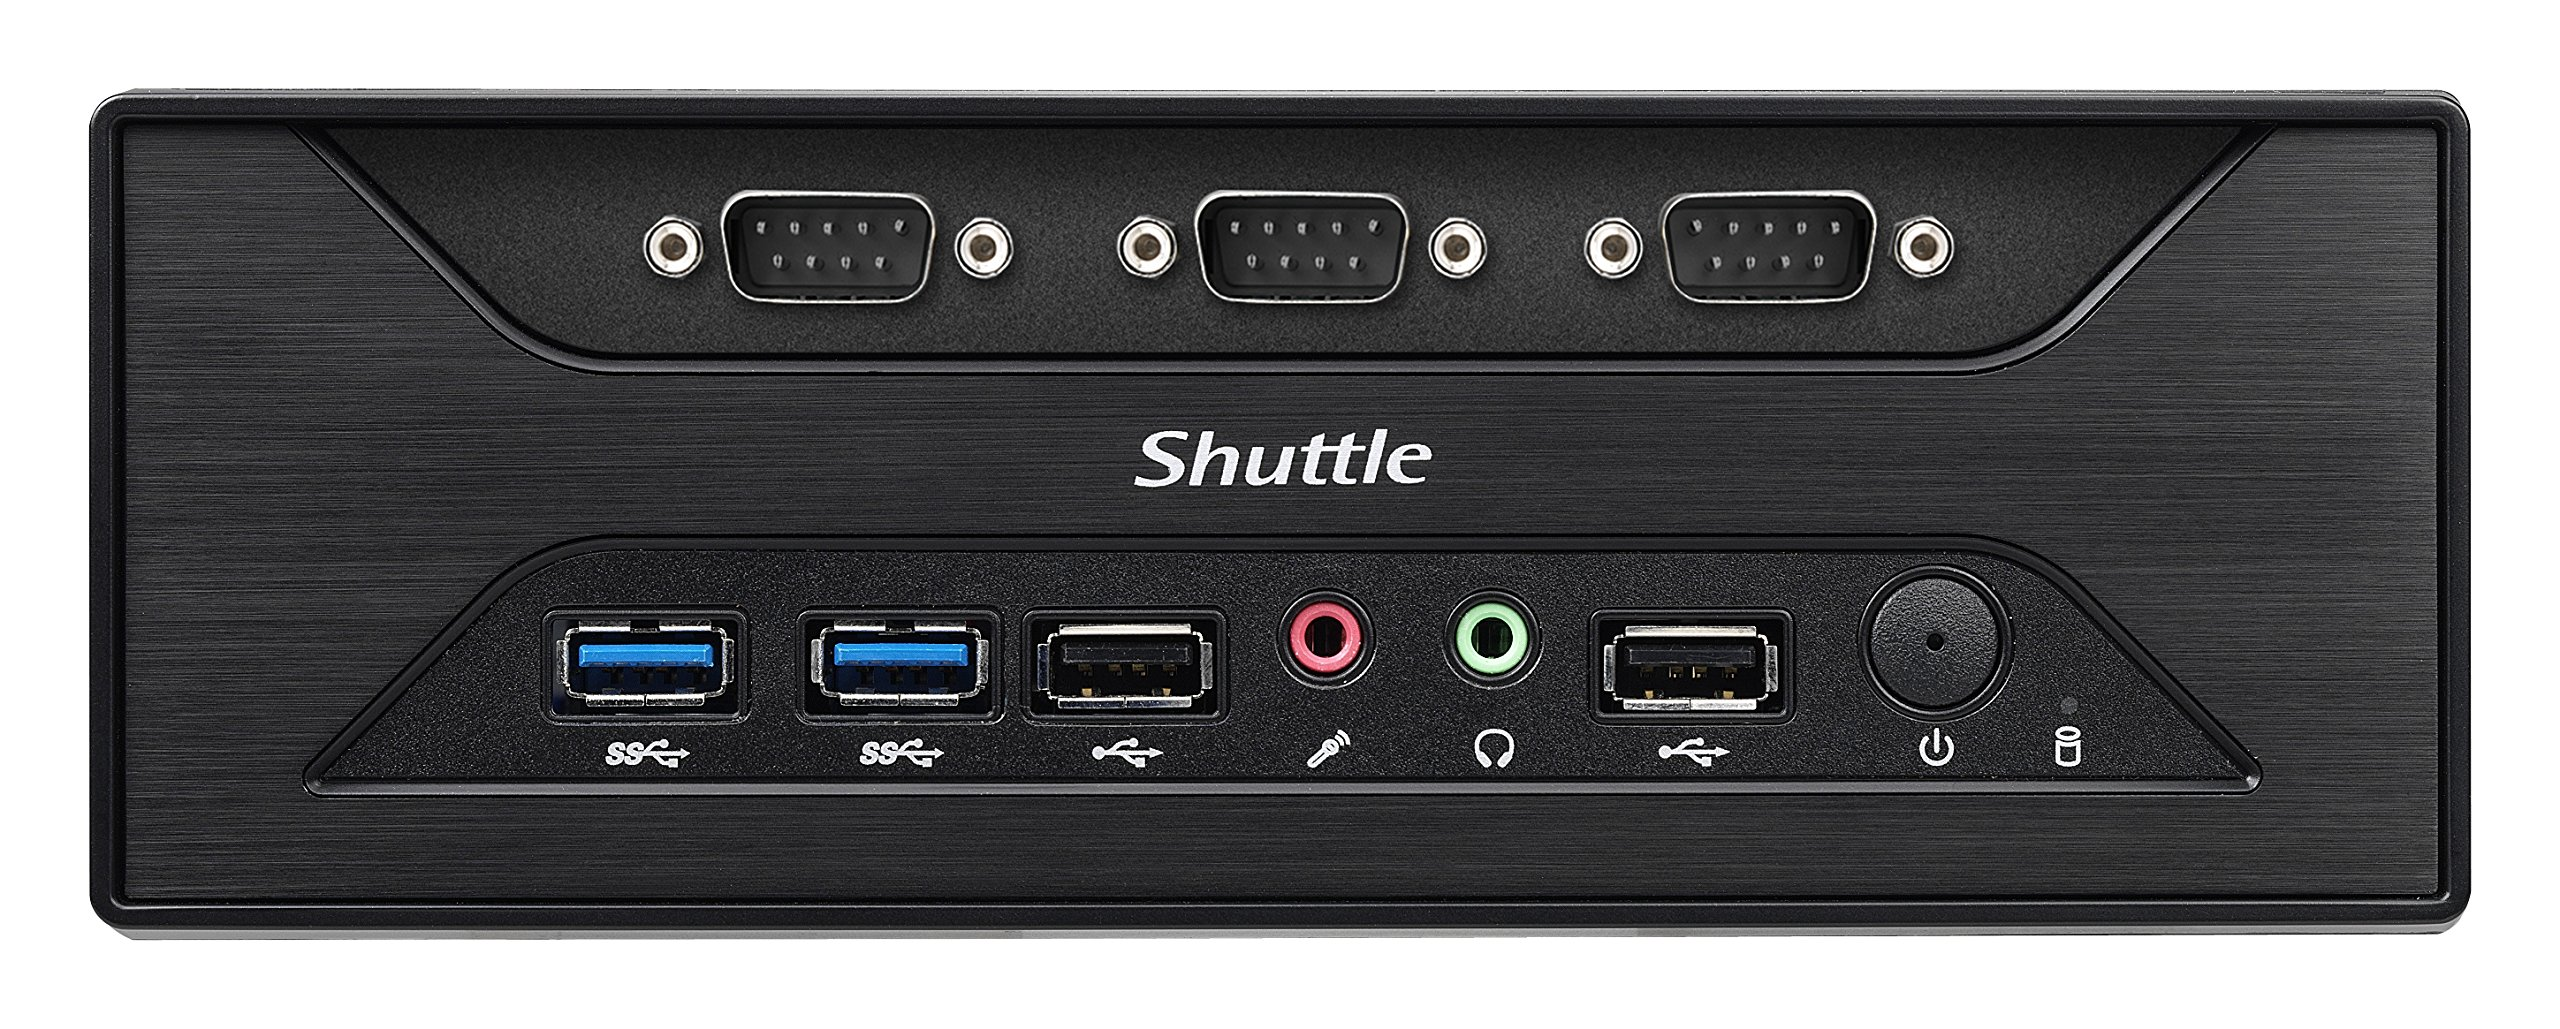 Shuttle XPC Slim XC60J Intel Celeron J3355, 8 x COM Ports, Support SODIMM DDR3L (Max. 16GB), Include Heatpipe Cooling Module by Shuttle (Image #5)